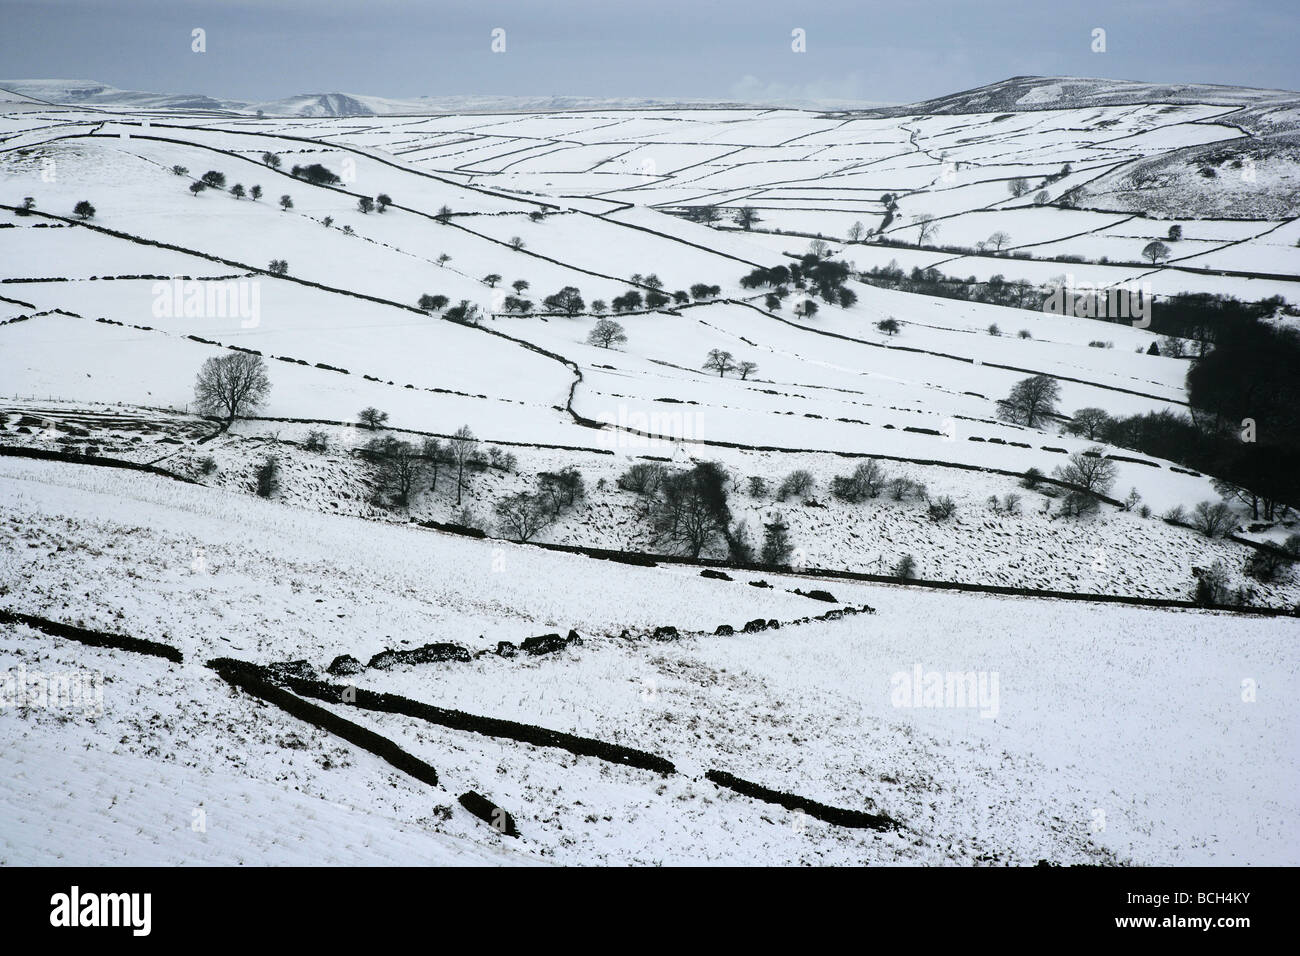 Landscape near Hathersage in the Derbyshire Peak District with Mam Tor and Lose Hill on the horizon in winter - Stock Image